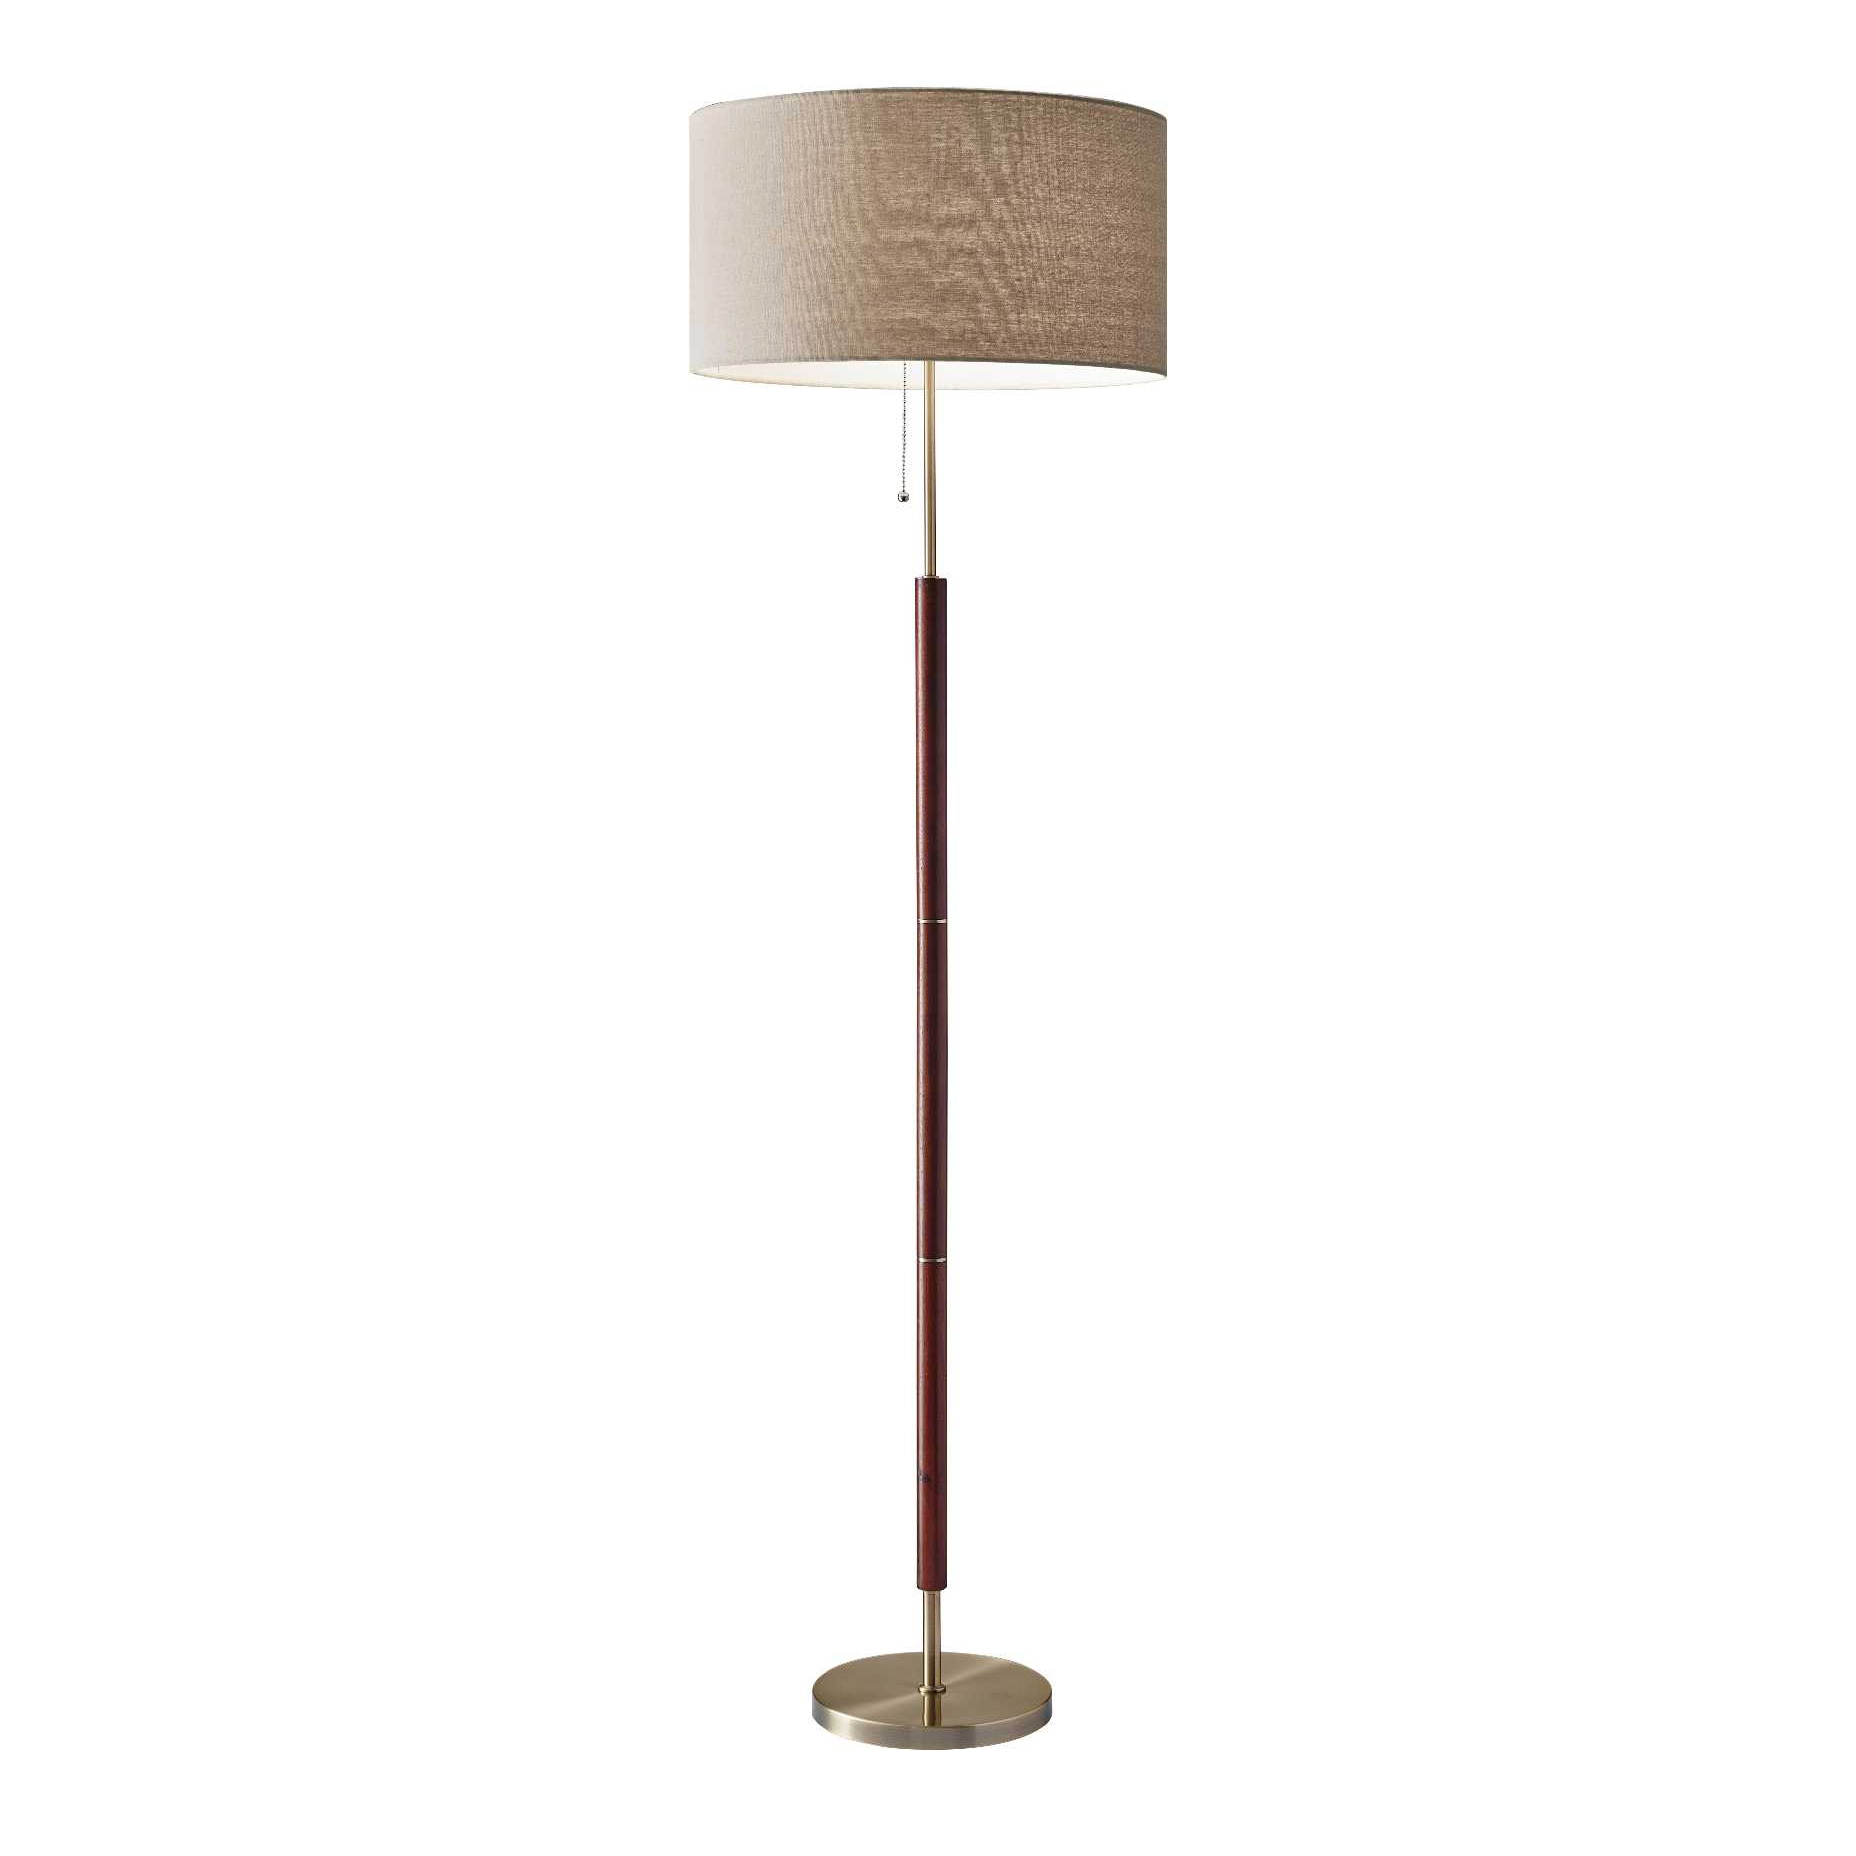 floor lamp by adesso corp   - hamilton floor lamp by adesso corp